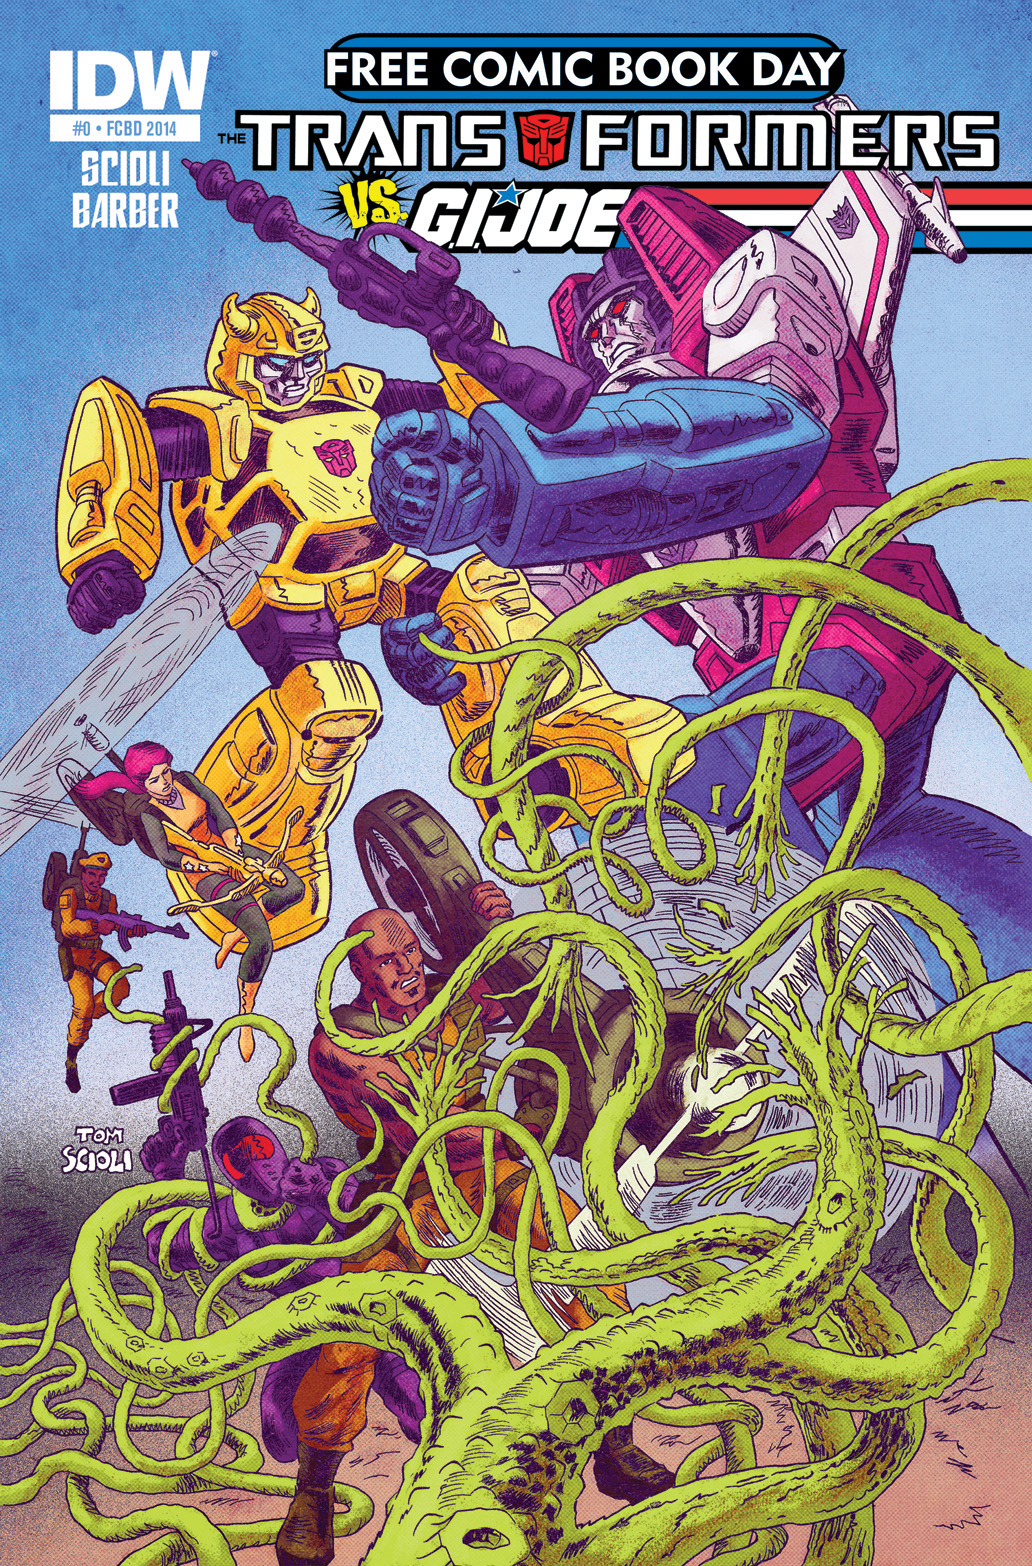 Transformers/G.I. Joe Free Comic Book Day Cover Art by Tom Scioli Colors by Josh Burcham